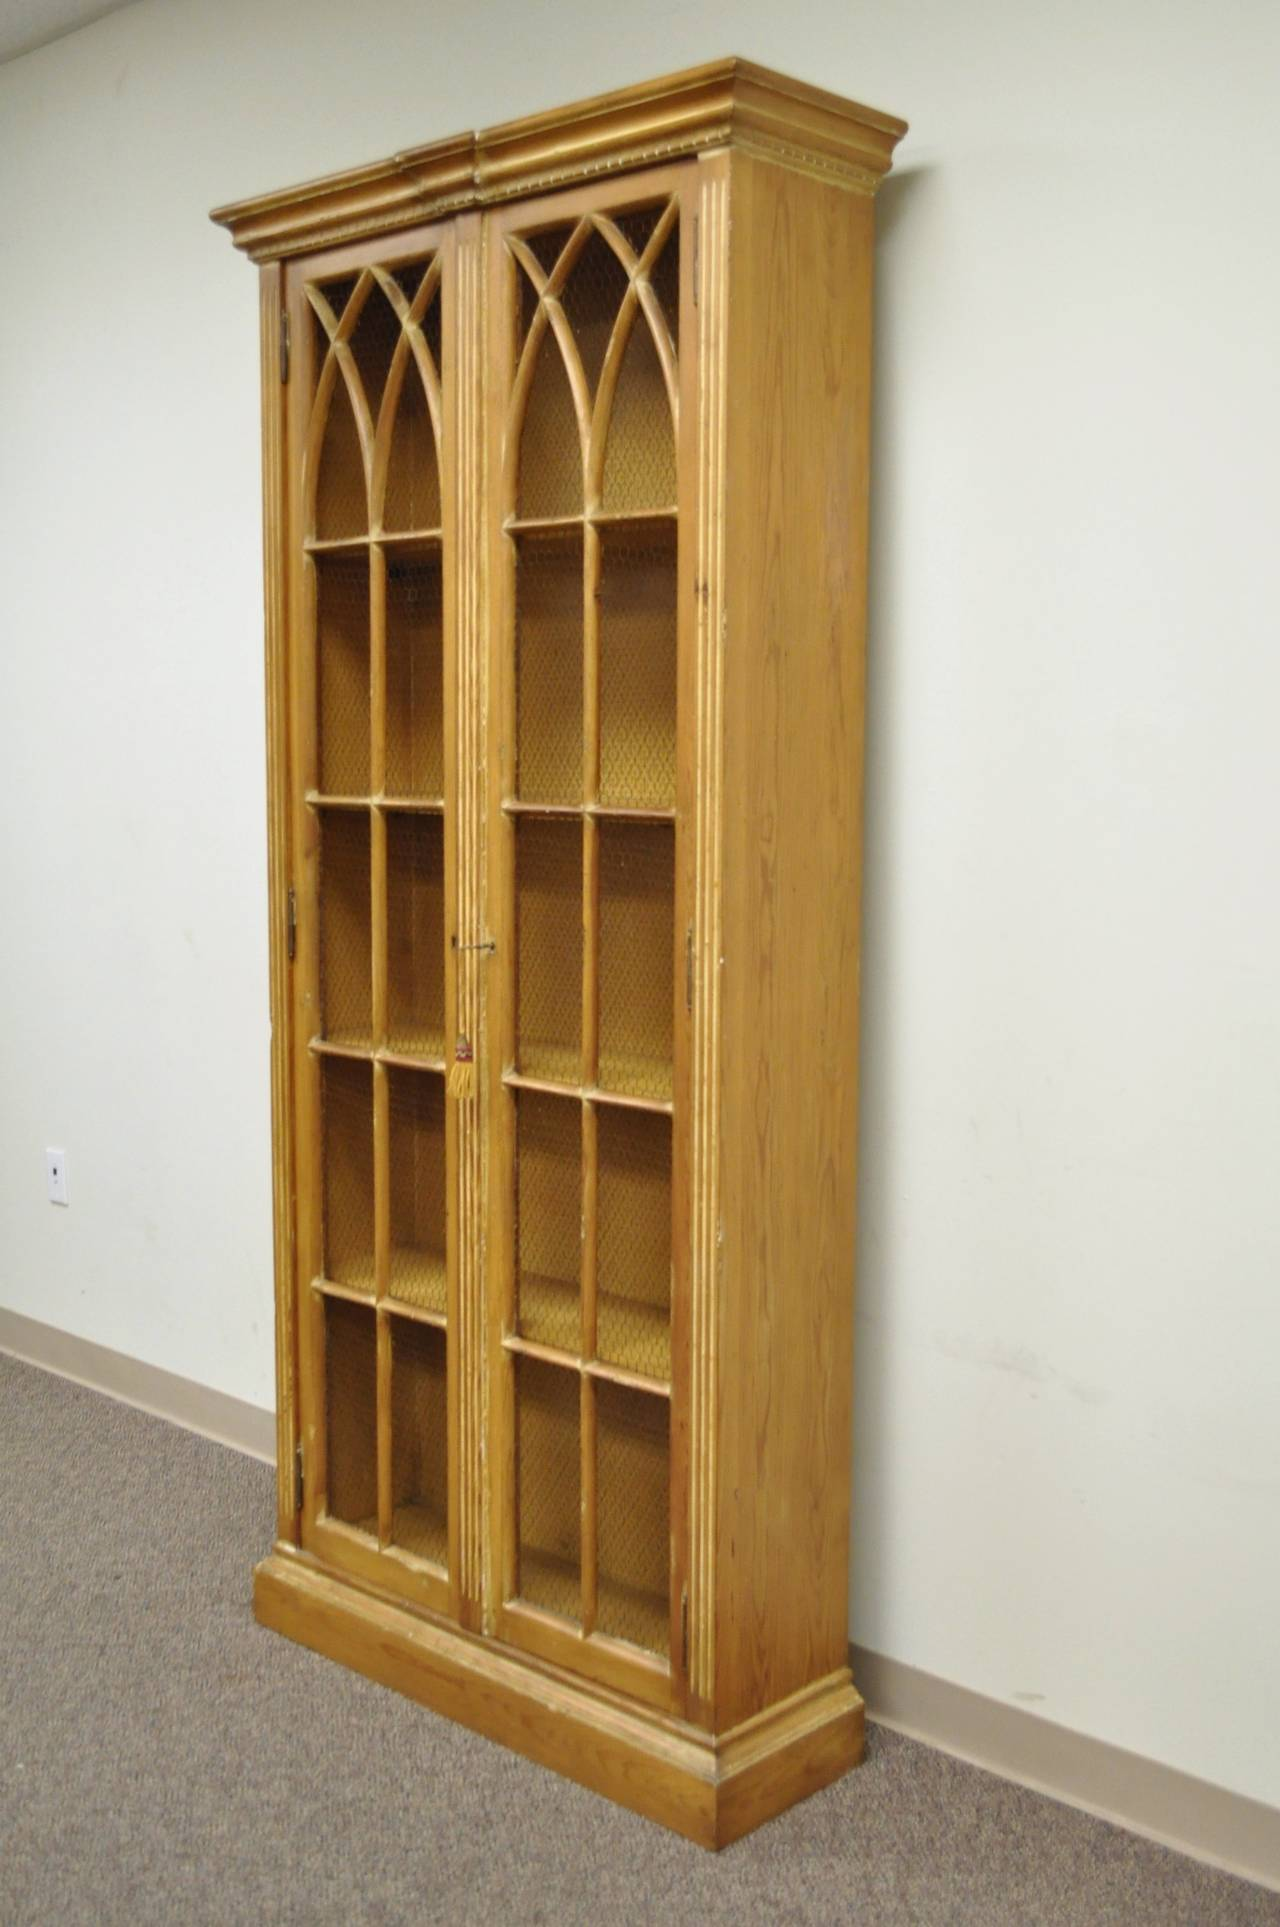 Stately Vintage Italian Bookcase In The Mission Or Gothic Taste This Item Features A Tall